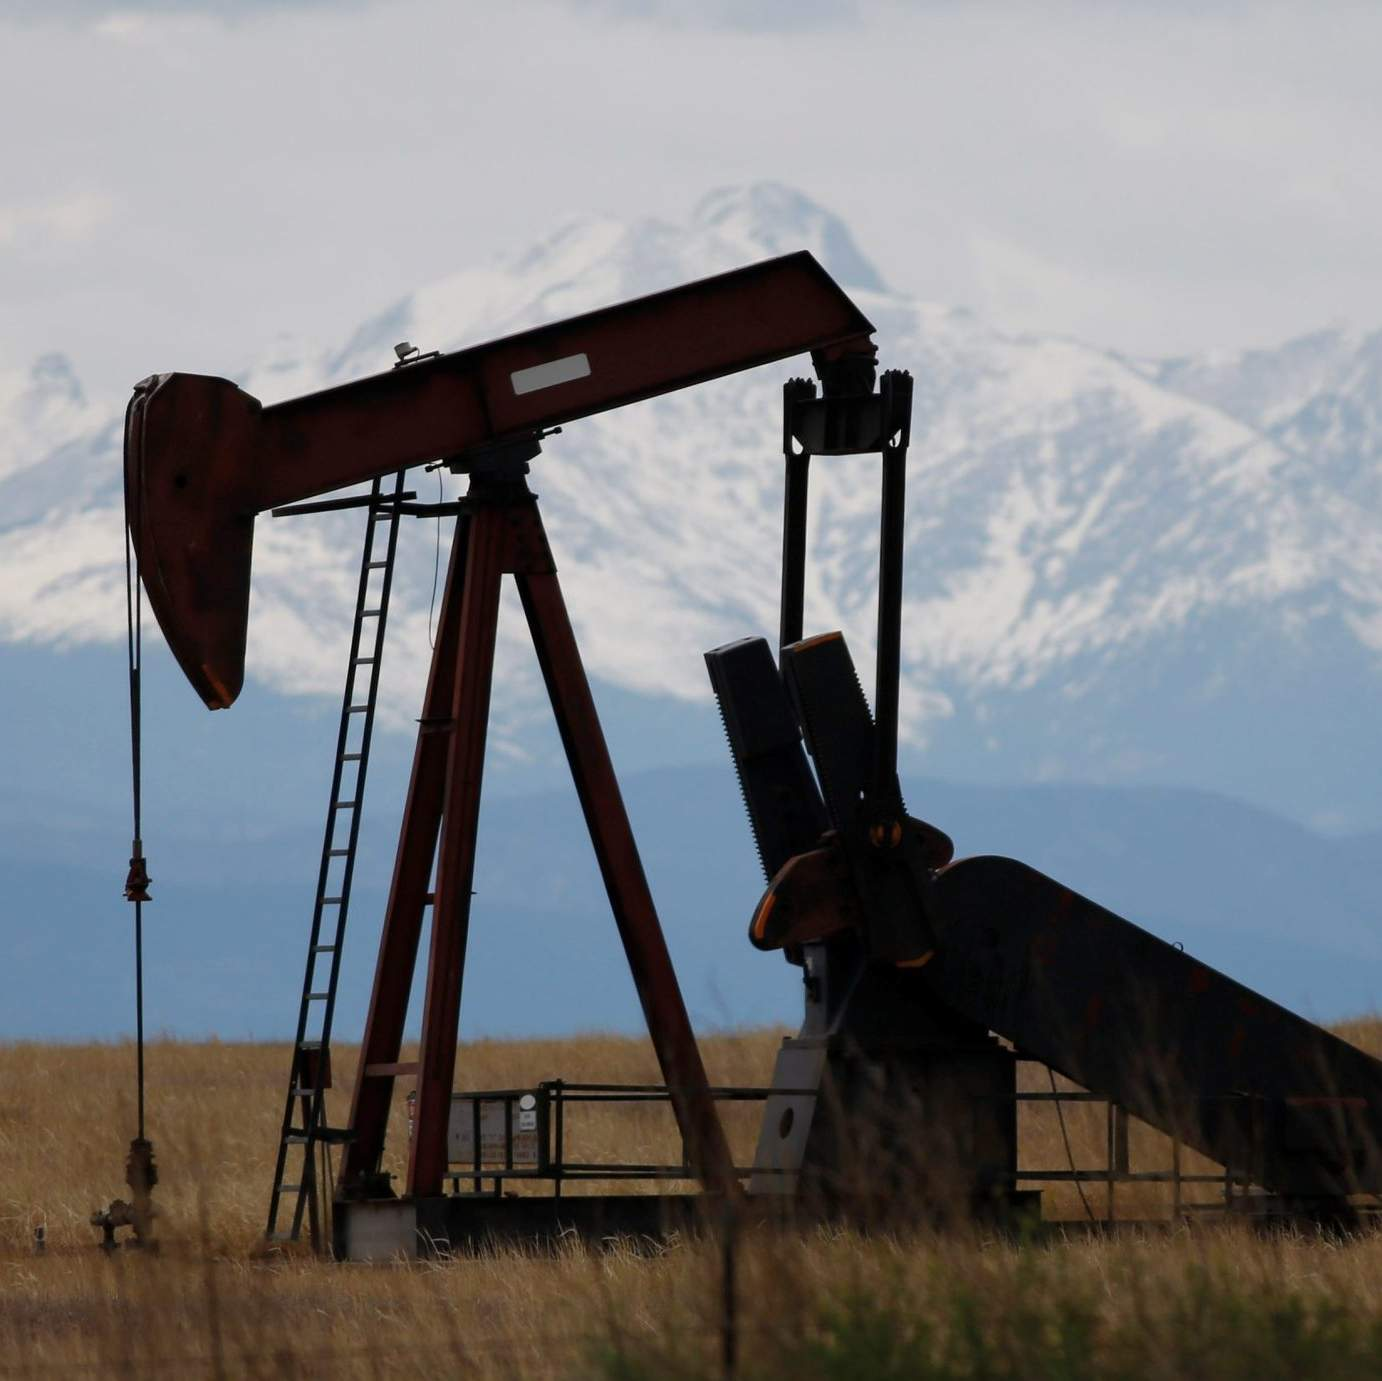 What will oil and gas reform mean for Colorado?